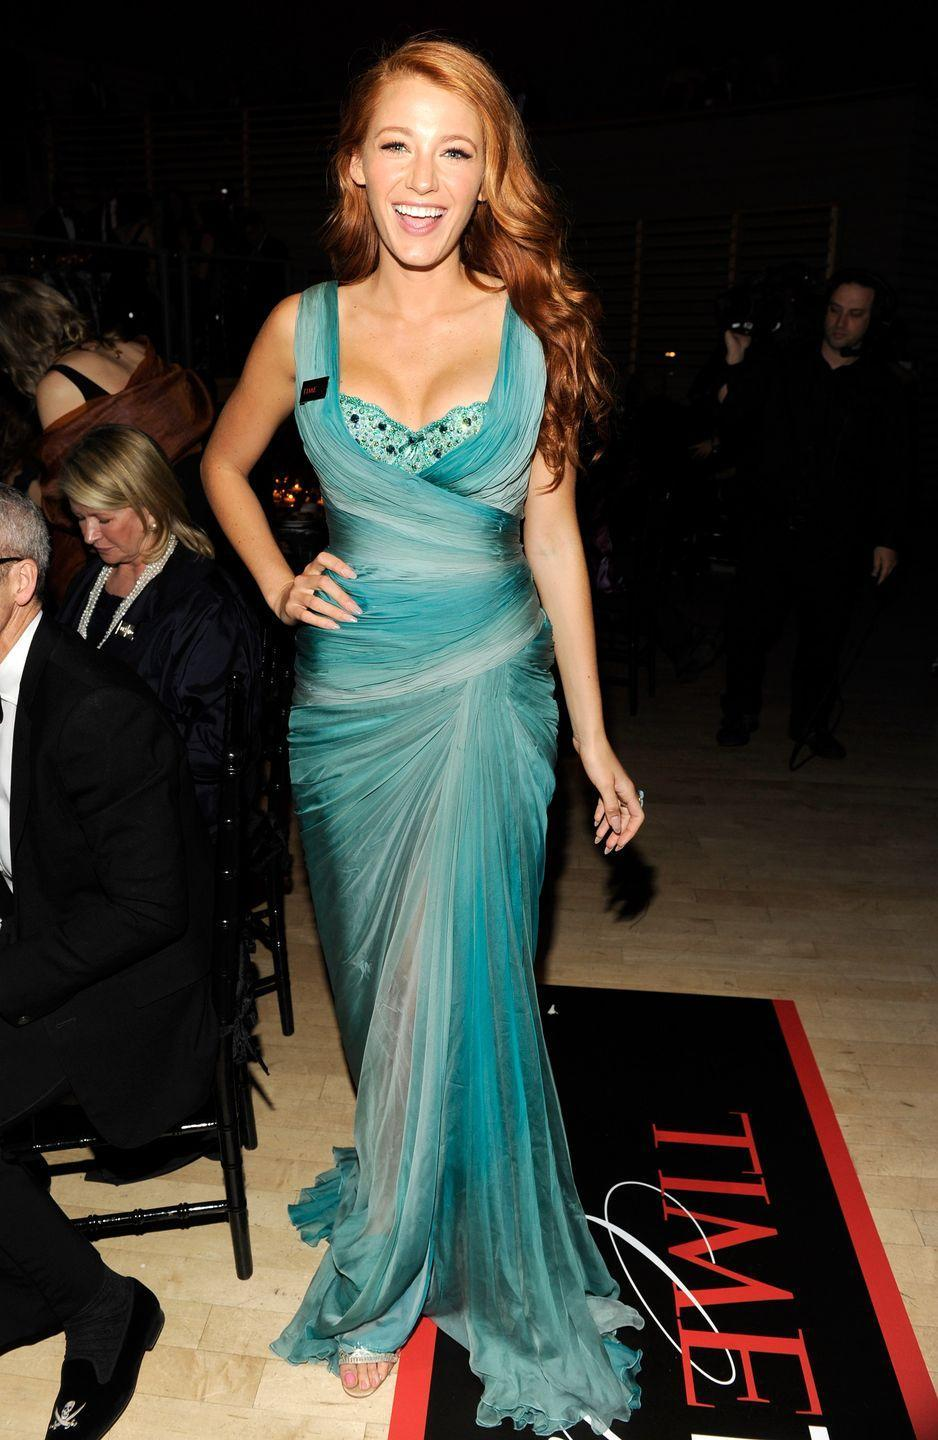 <p>It was hard <em>not</em> to mistake Blake Lively for Princess Ariel when she dyed her hair red in 2011. Then the actress wore this seafoam green draped gown by Zuhair Murad Couture and she became even more of a dead ringer for the mermaid. </p>